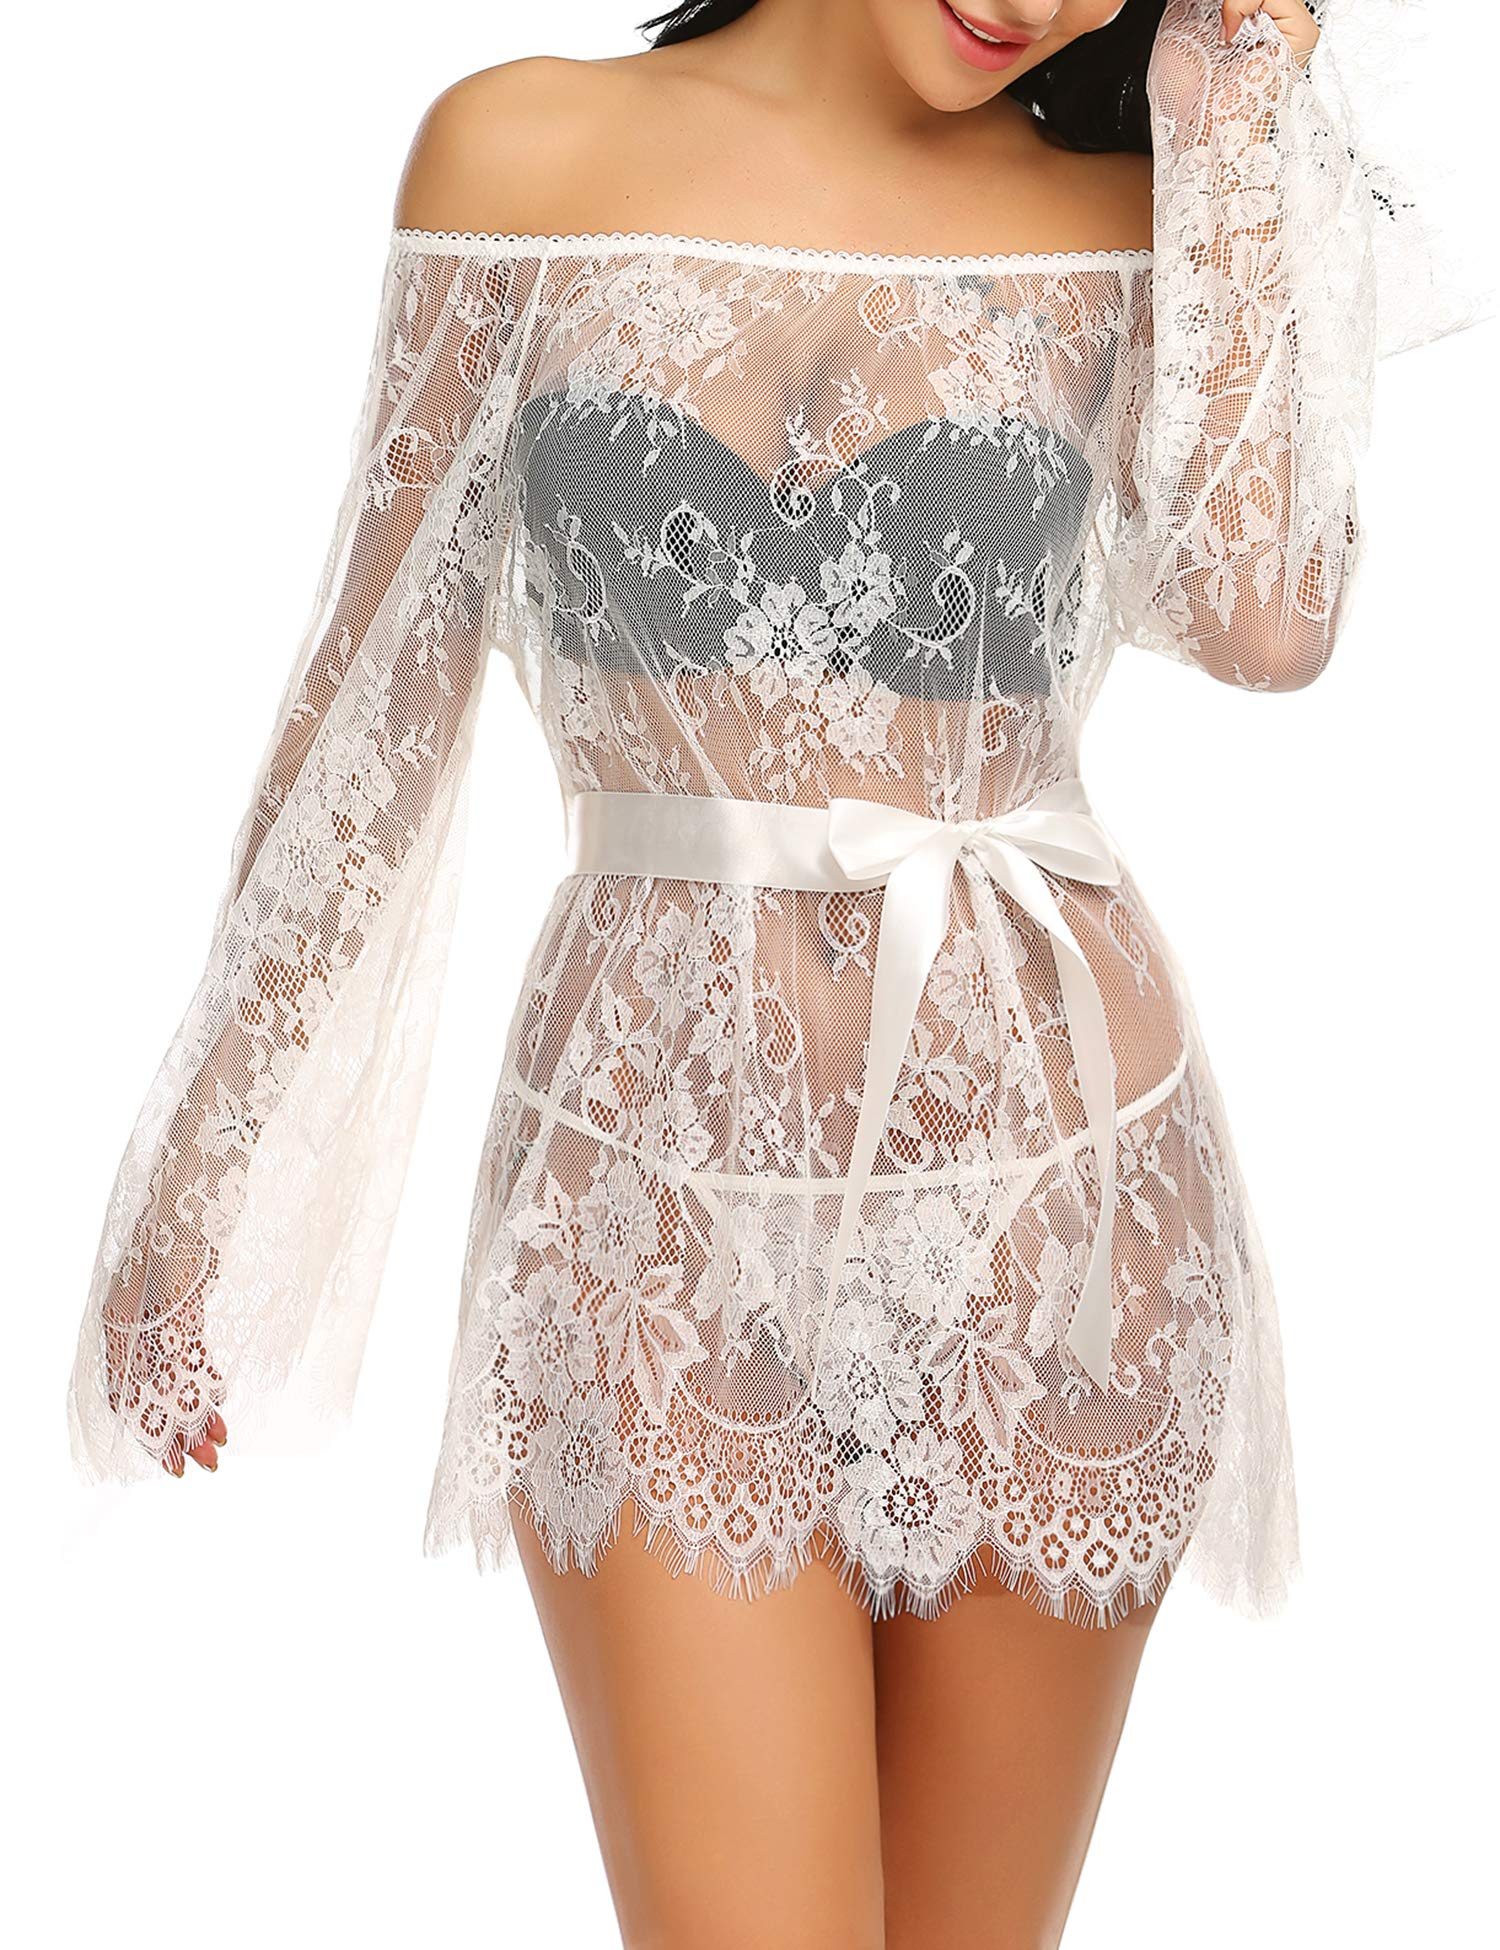 Hotouch Women Lingerie Dress Sexy Lace Chemise Sleepwear Smock Lingerie Off Shoulder Cover Up with Belt